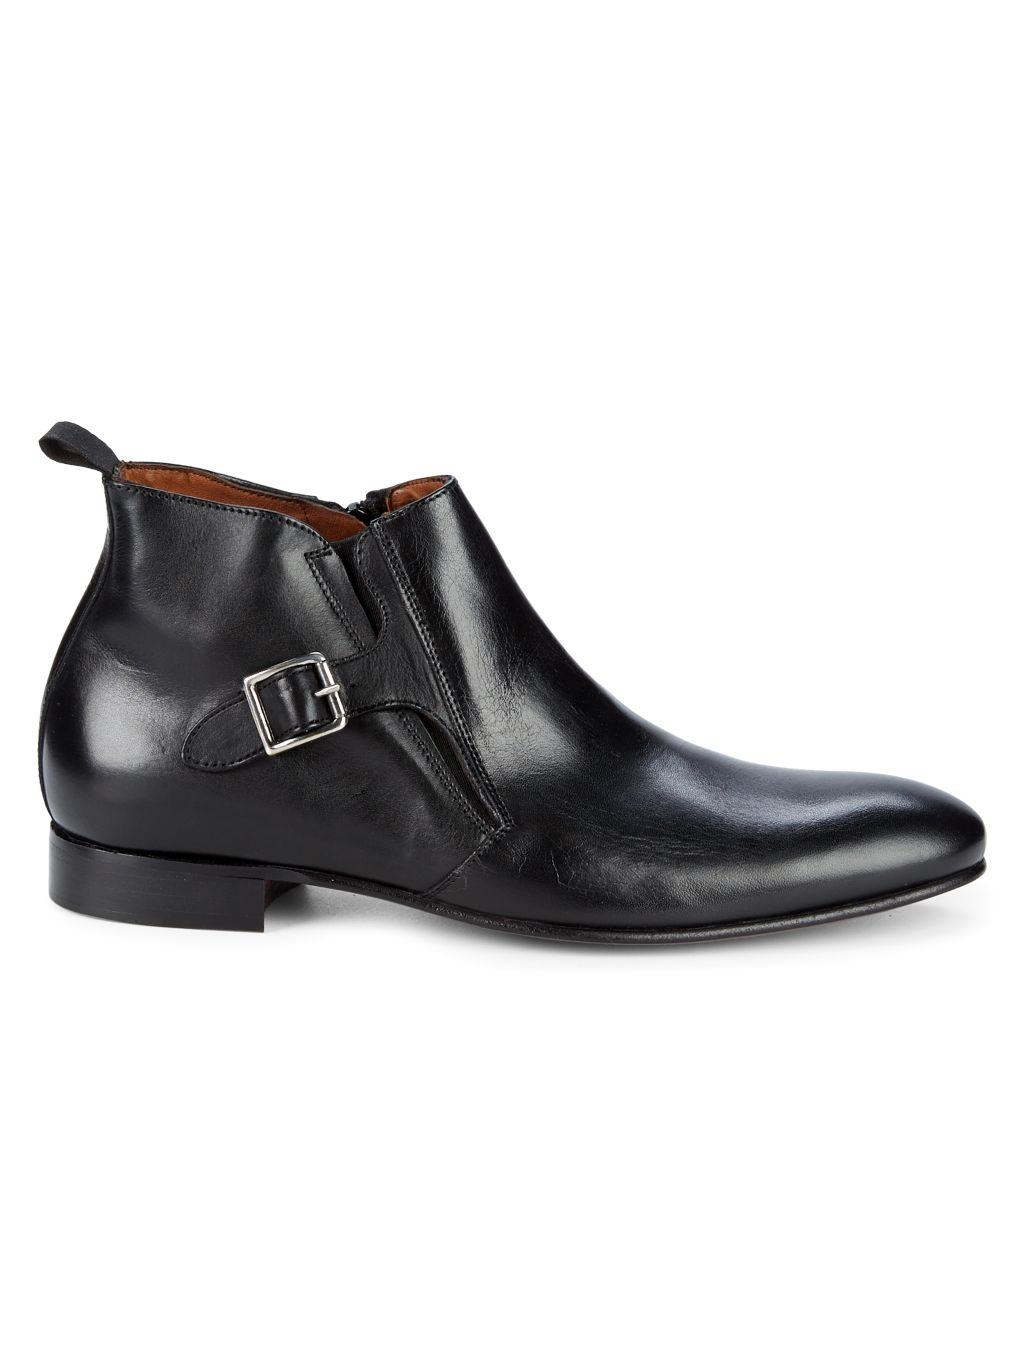 Massimo Matteo Buckled Leather Chelsea Boots